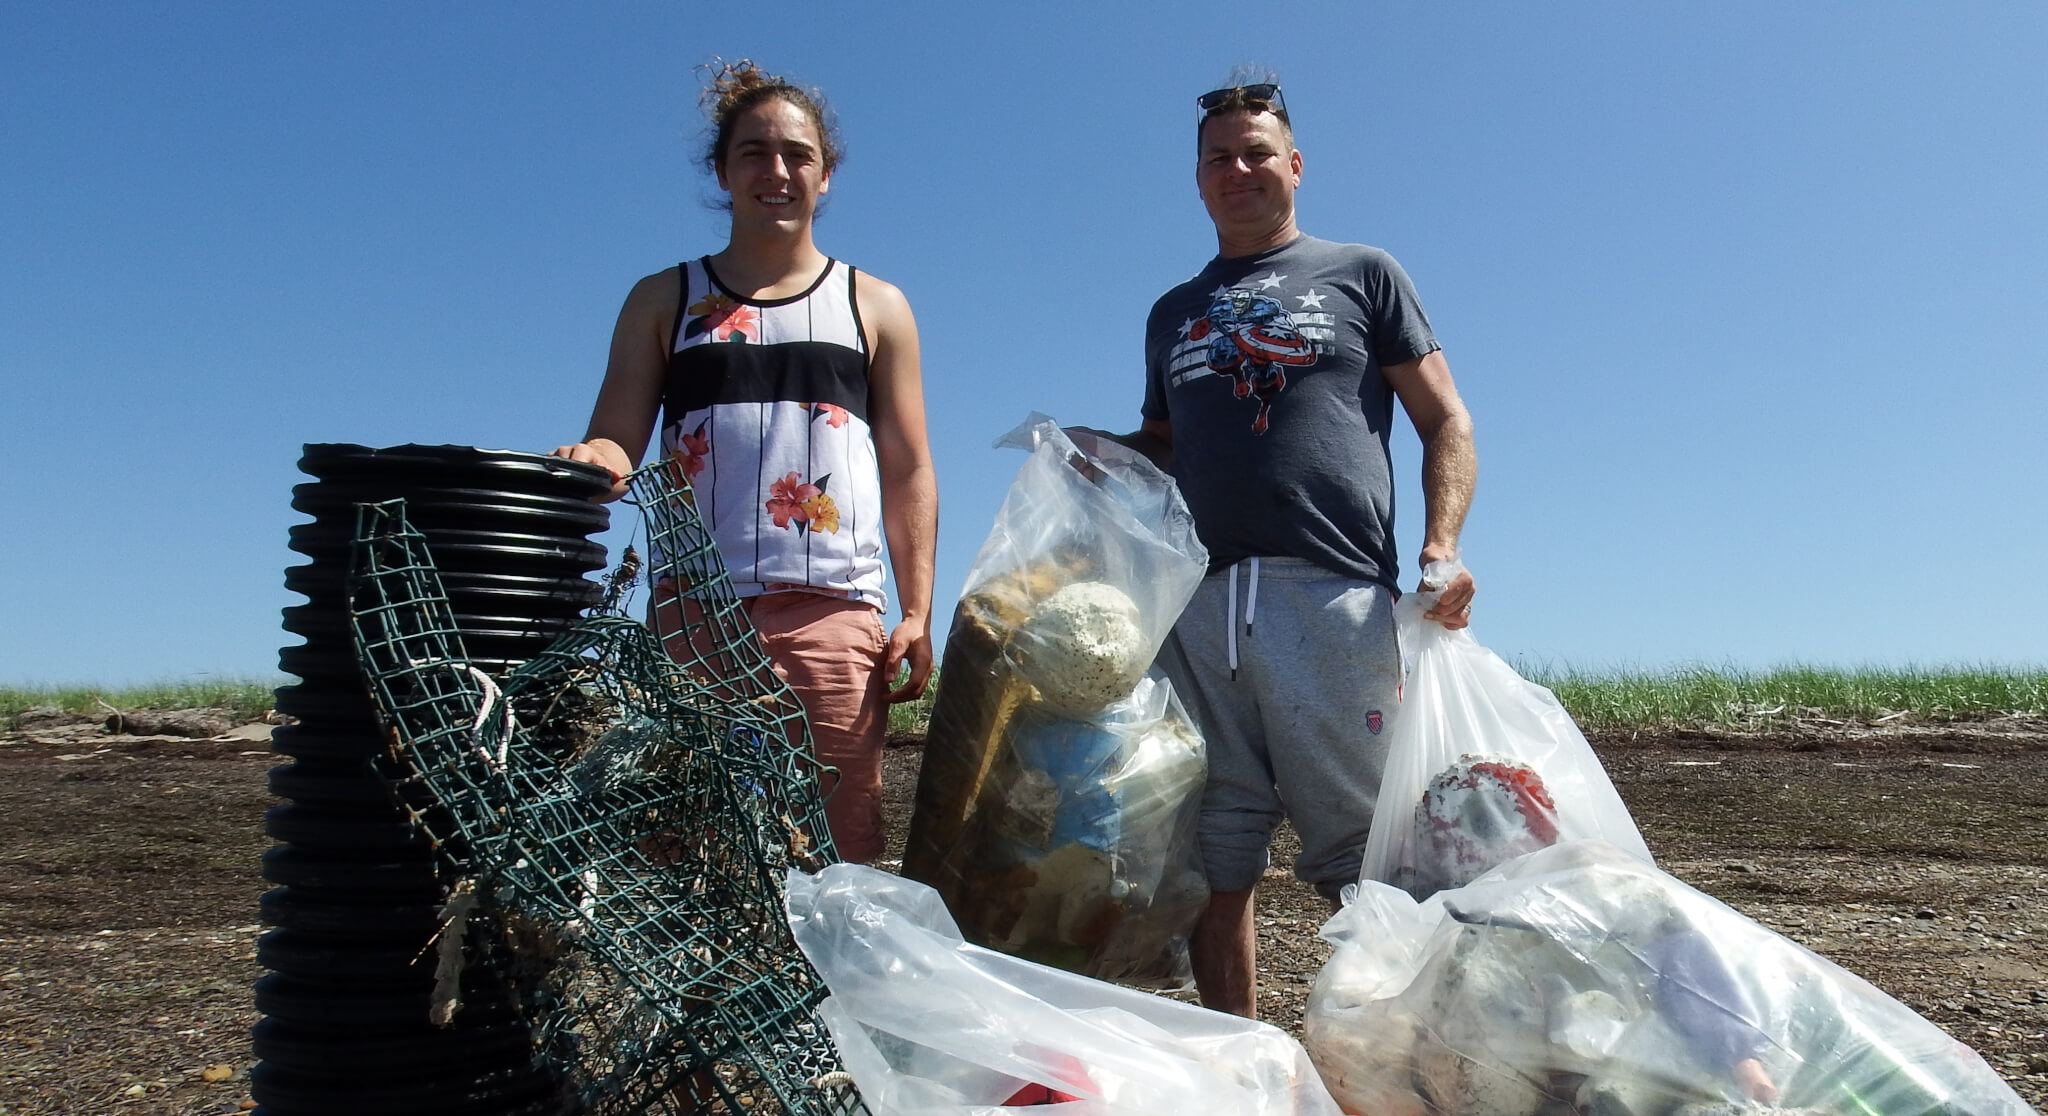 Summer student and Lewnnany collect trash on the beach